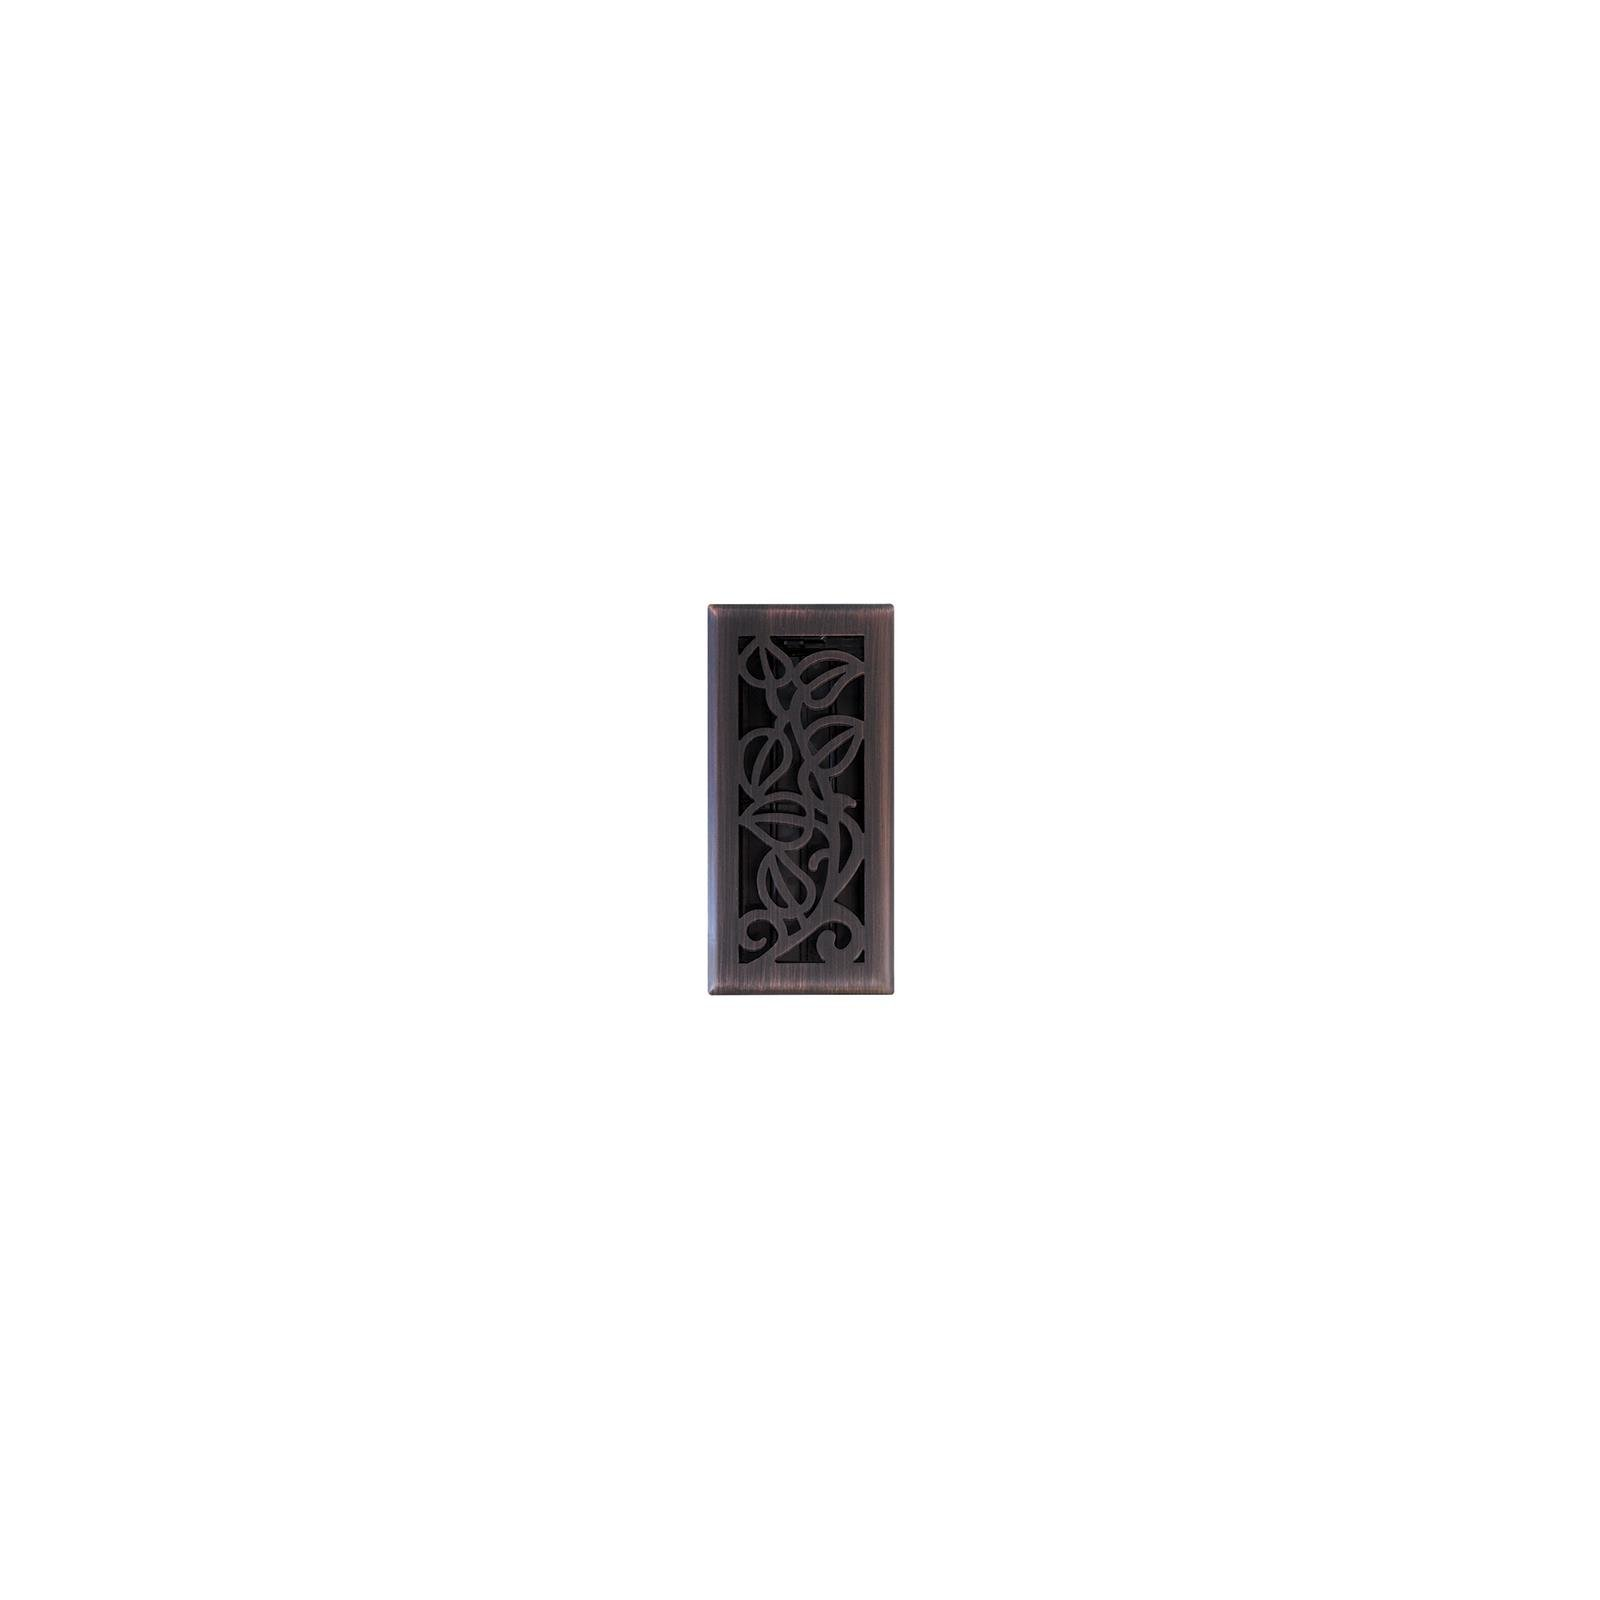 Imperial Mfg Group Usa RG3279 Vine Floor Register, Oil Rubbed Bronze, 4 x 10-In. - Quantity 5